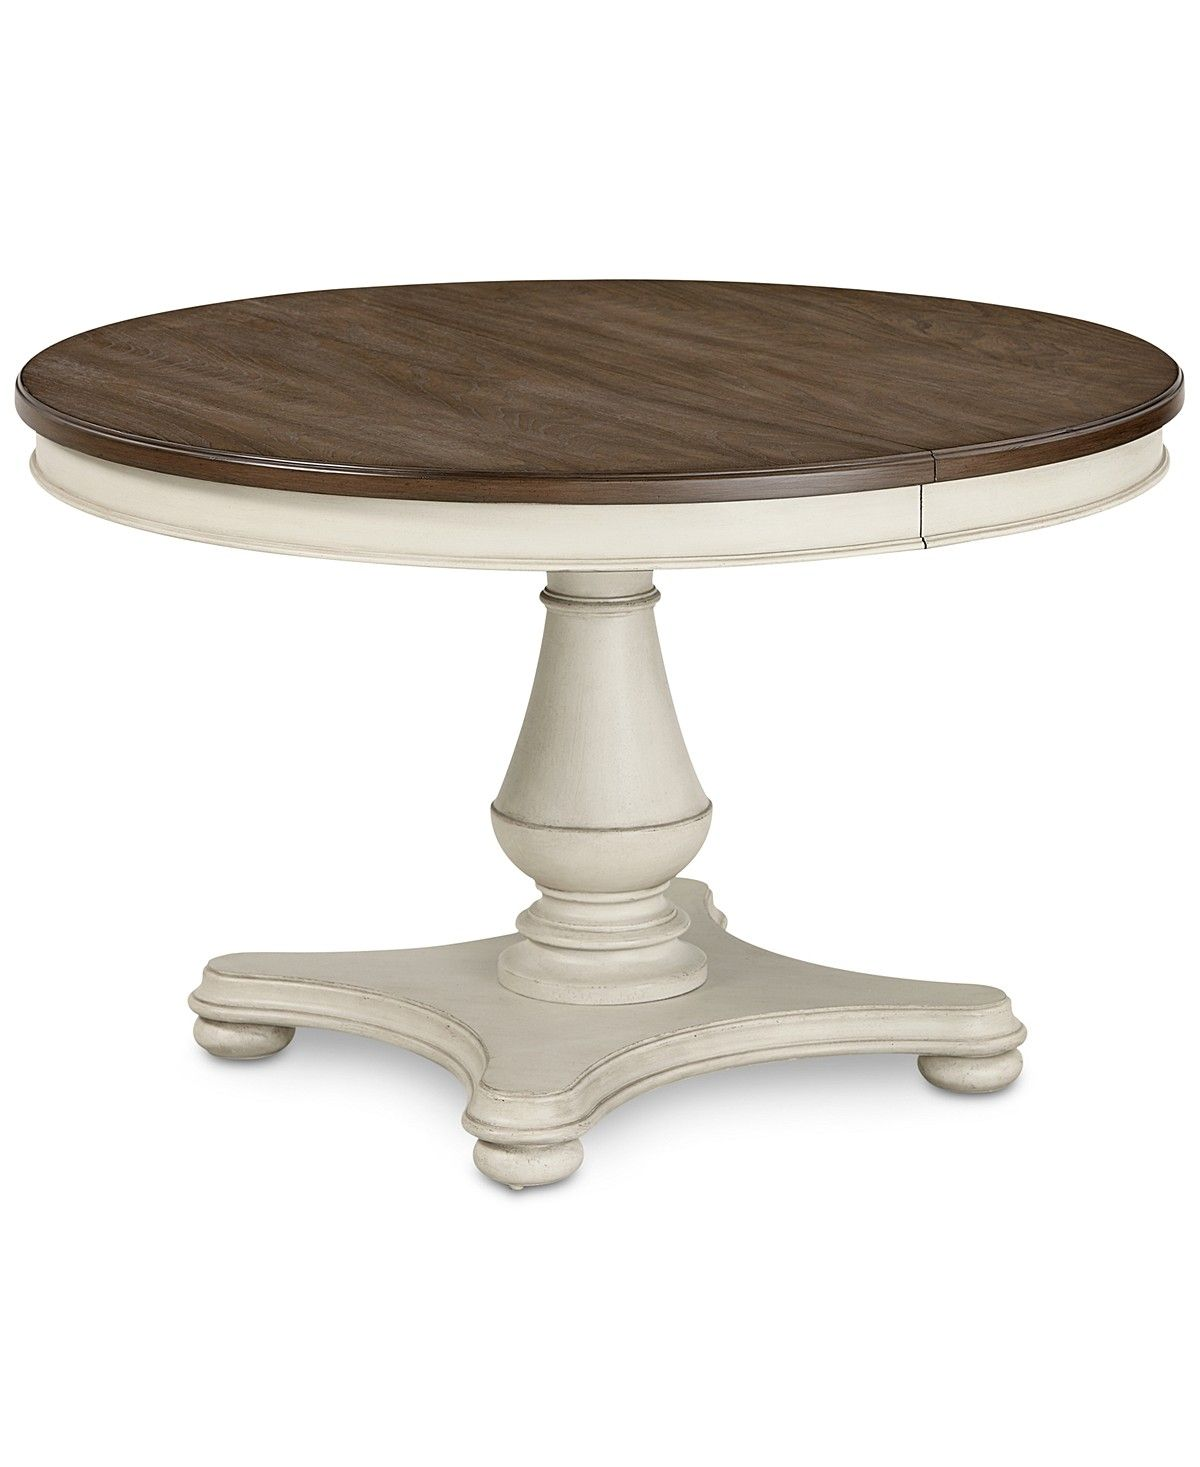 Furniture Barclay Expandable Round Dining Pedestal Table Reviews Furniture Macy S In 2020 Dining Table With Leaf Round Dining Expandable Round Dining Table